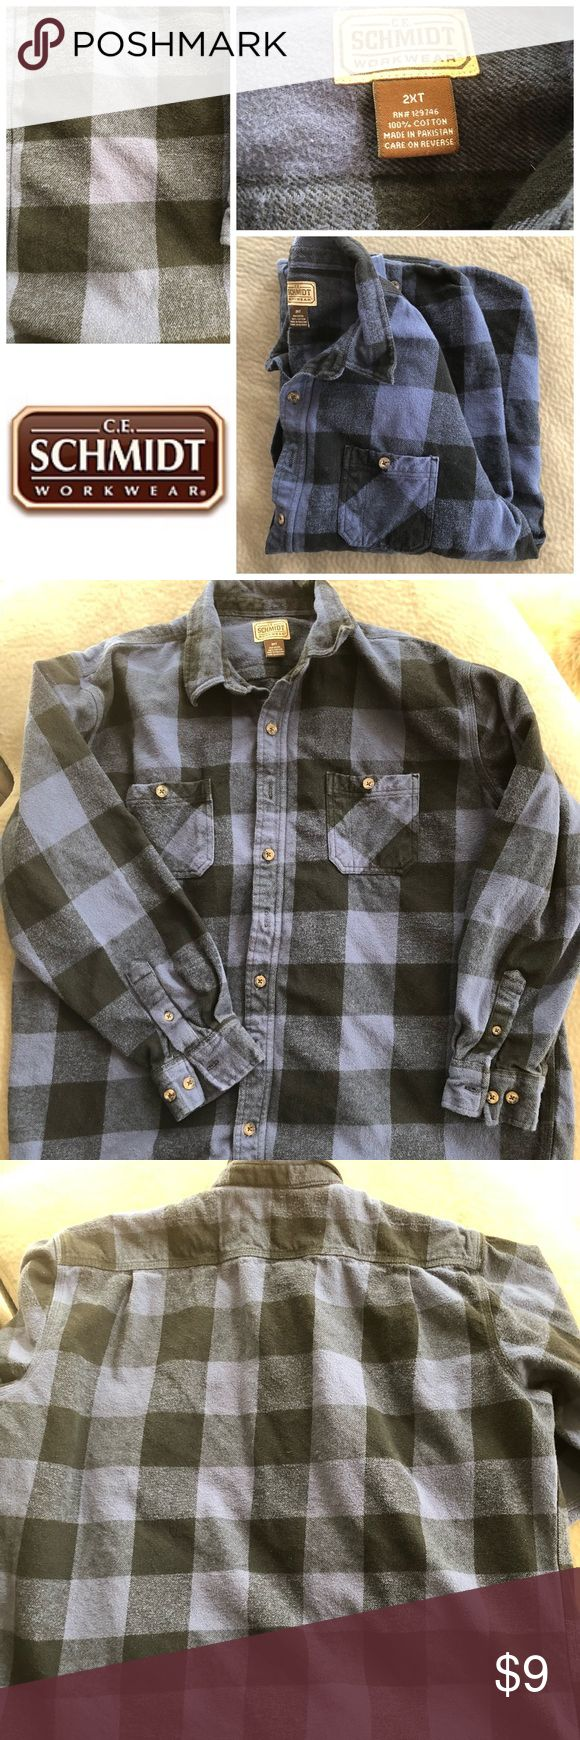 Men's Blue Flannel Shirt Blue and black thick flannel shirt. Size xxl. Condition is good; it does have some pulling but no stains or tears.   ⚠️This item will be up for one week and then donated⚠️ Shirts